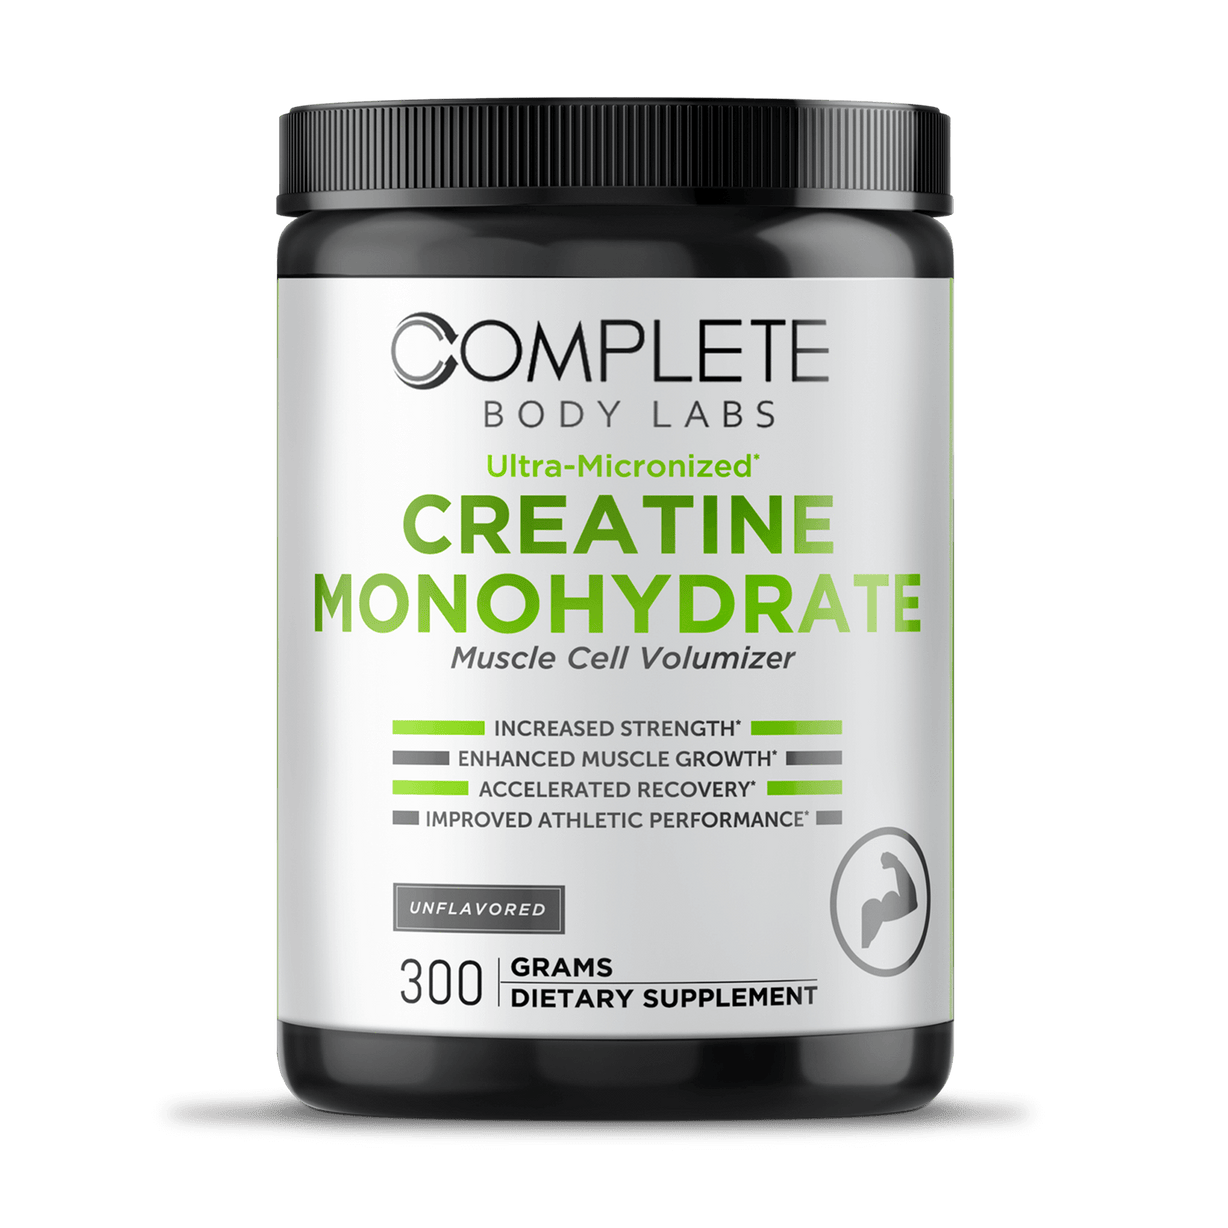 Ultra-Micronized CREATINE MONOHYDRATE (Muscle Cell Volumizer) Complete Body Labs | Probiotics, Nootropics, Brain Supplements, Protein Bars, Workout Supplements, Health Supplements, Omega-3 & Essential Vitamins For Men & Women